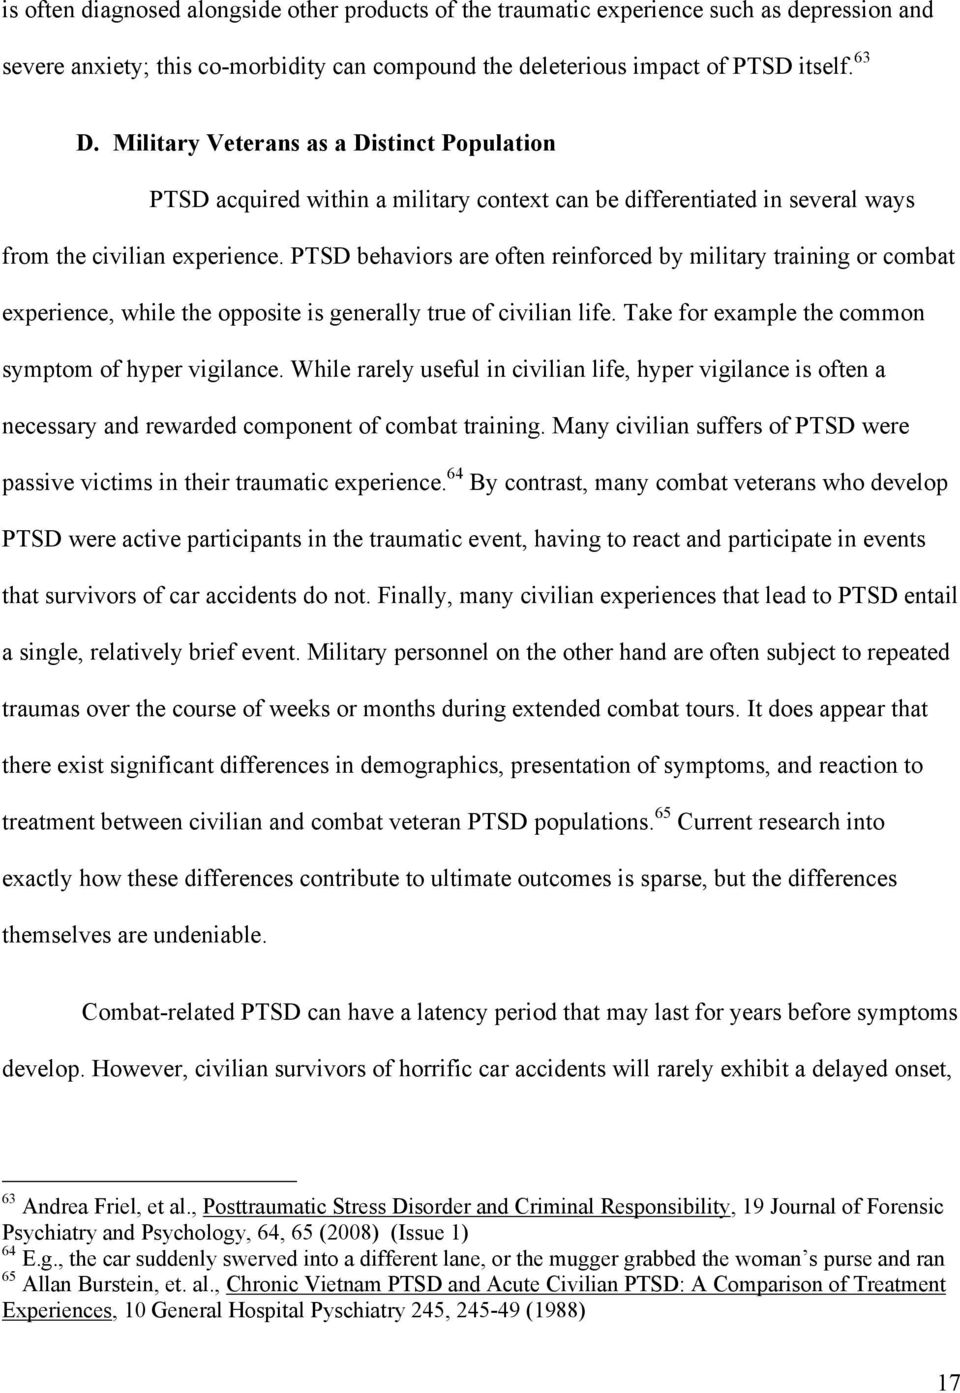 PTSD behaviors are often reinforced by military training or combat experience, while the opposite is generally true of civilian life. Take for example the common symptom of hyper vigilance.